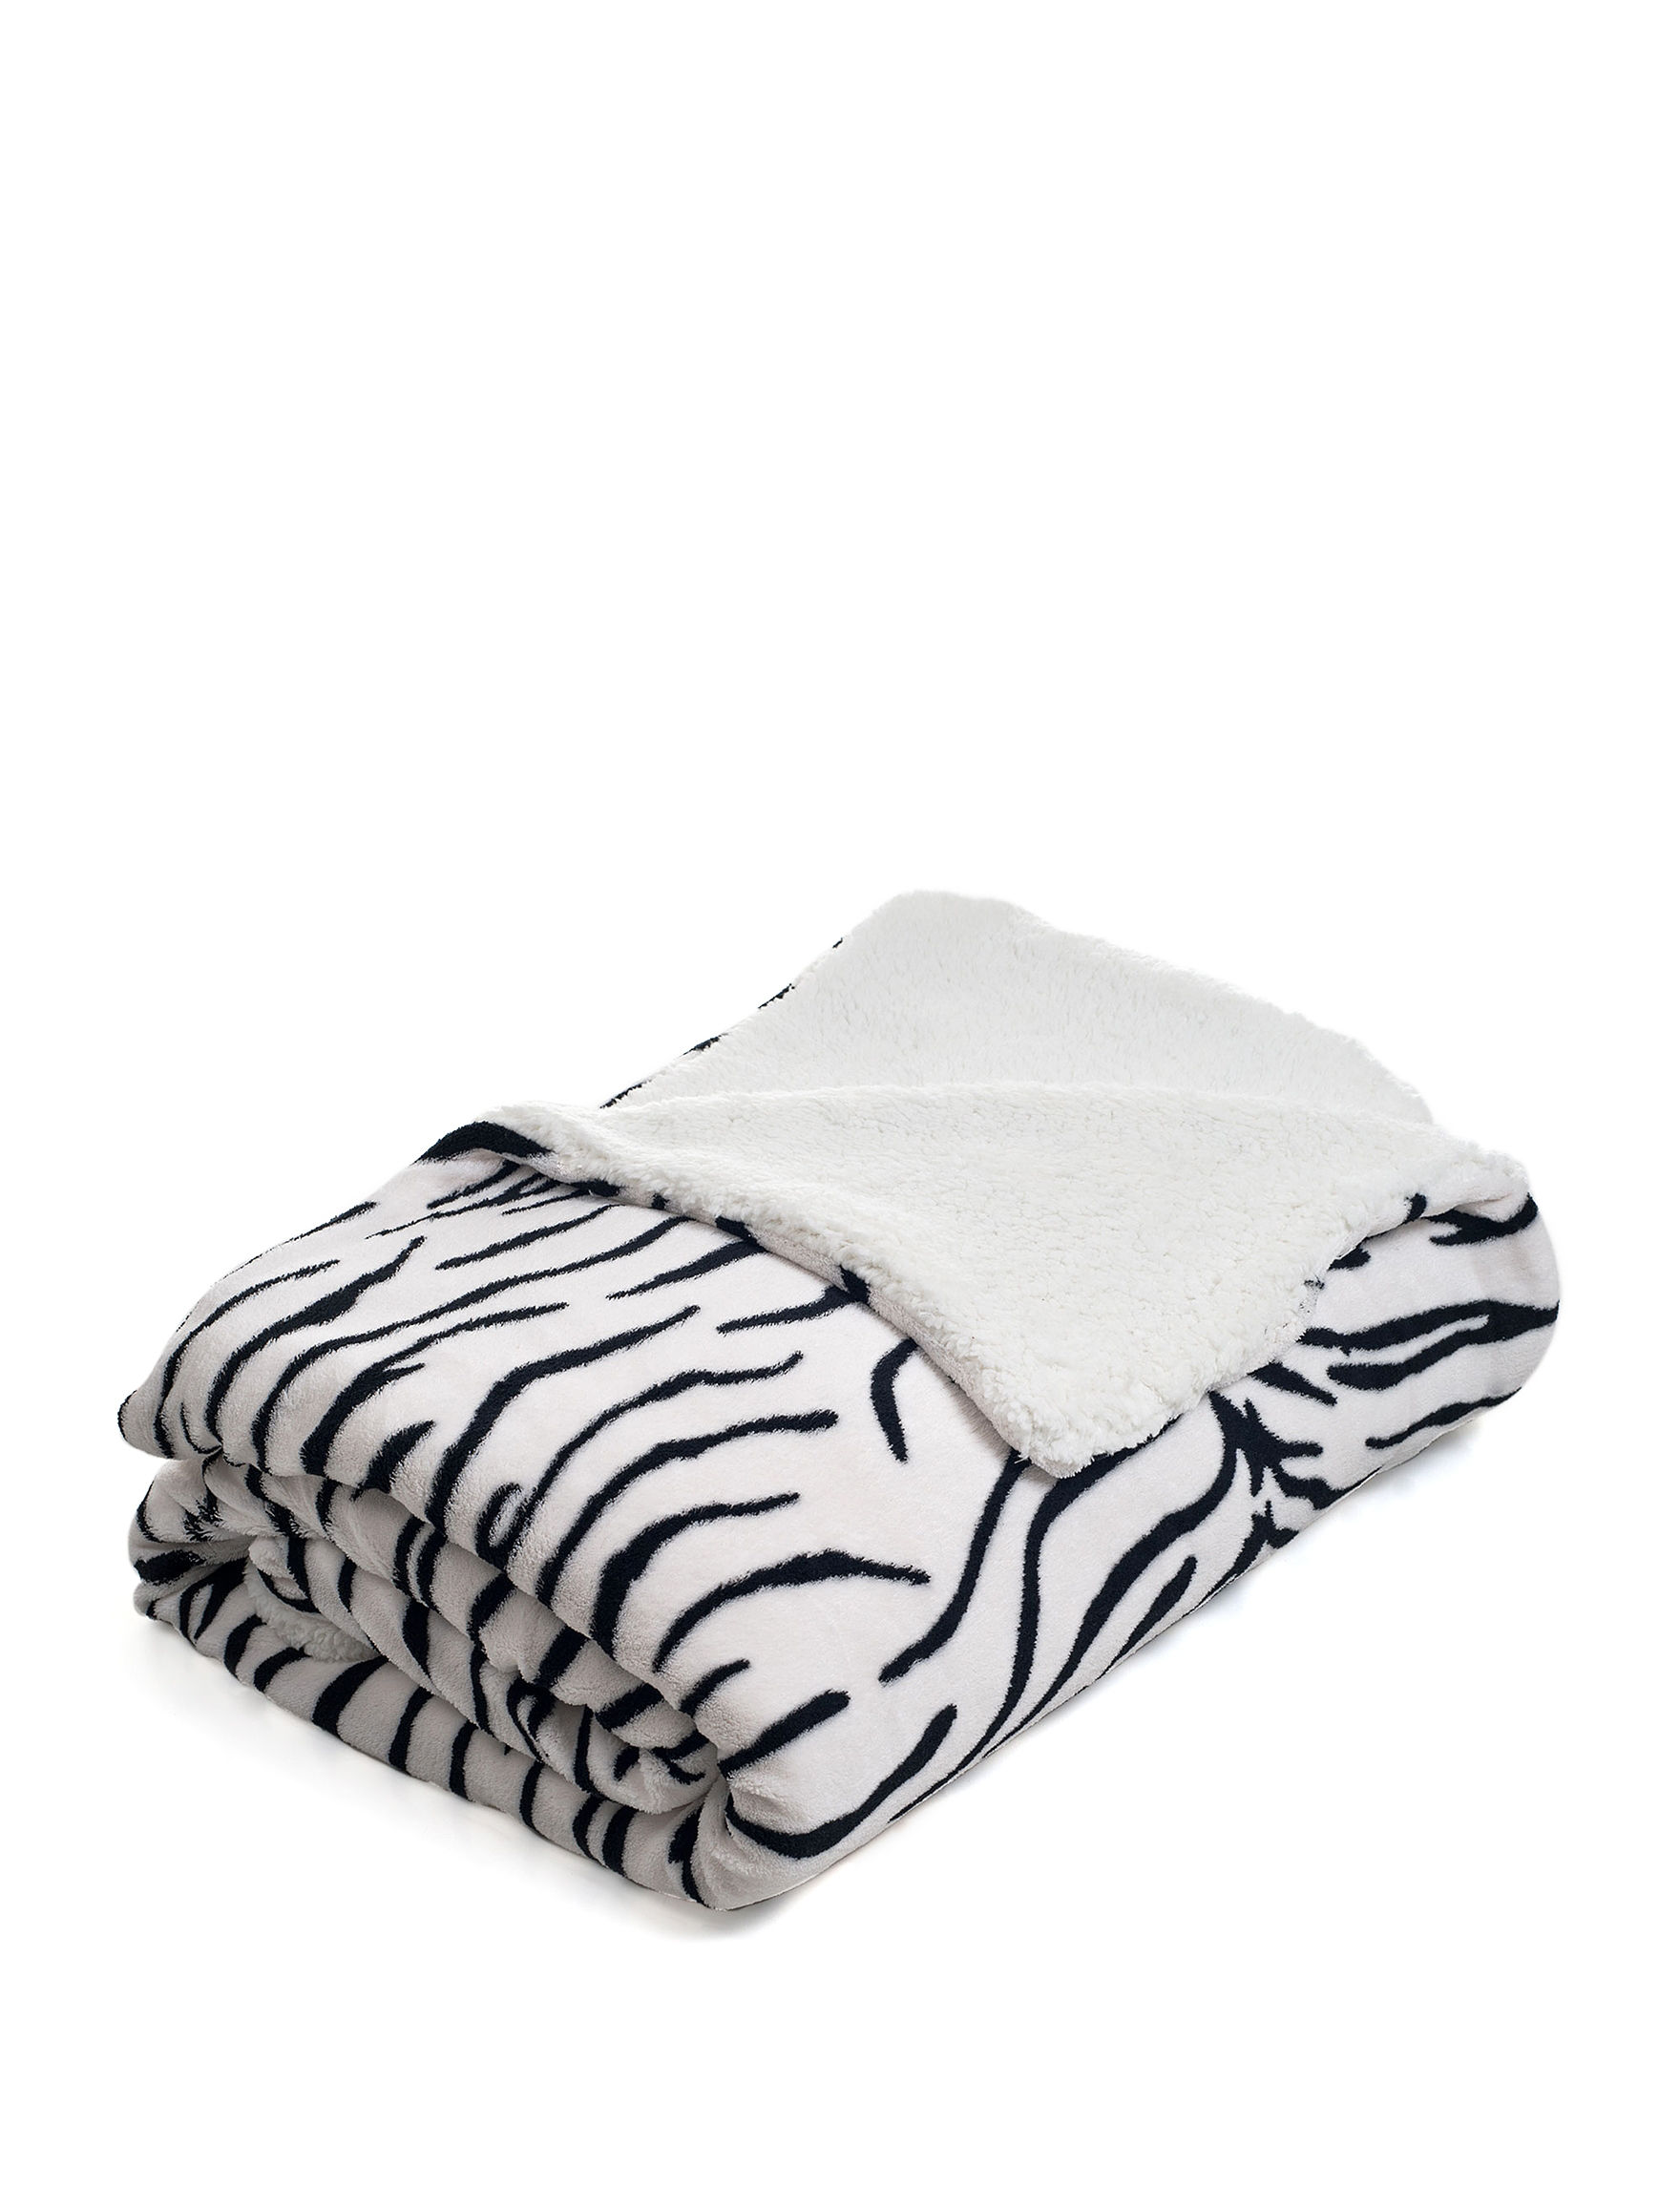 Lavish Home Zebra Blankets & Throws